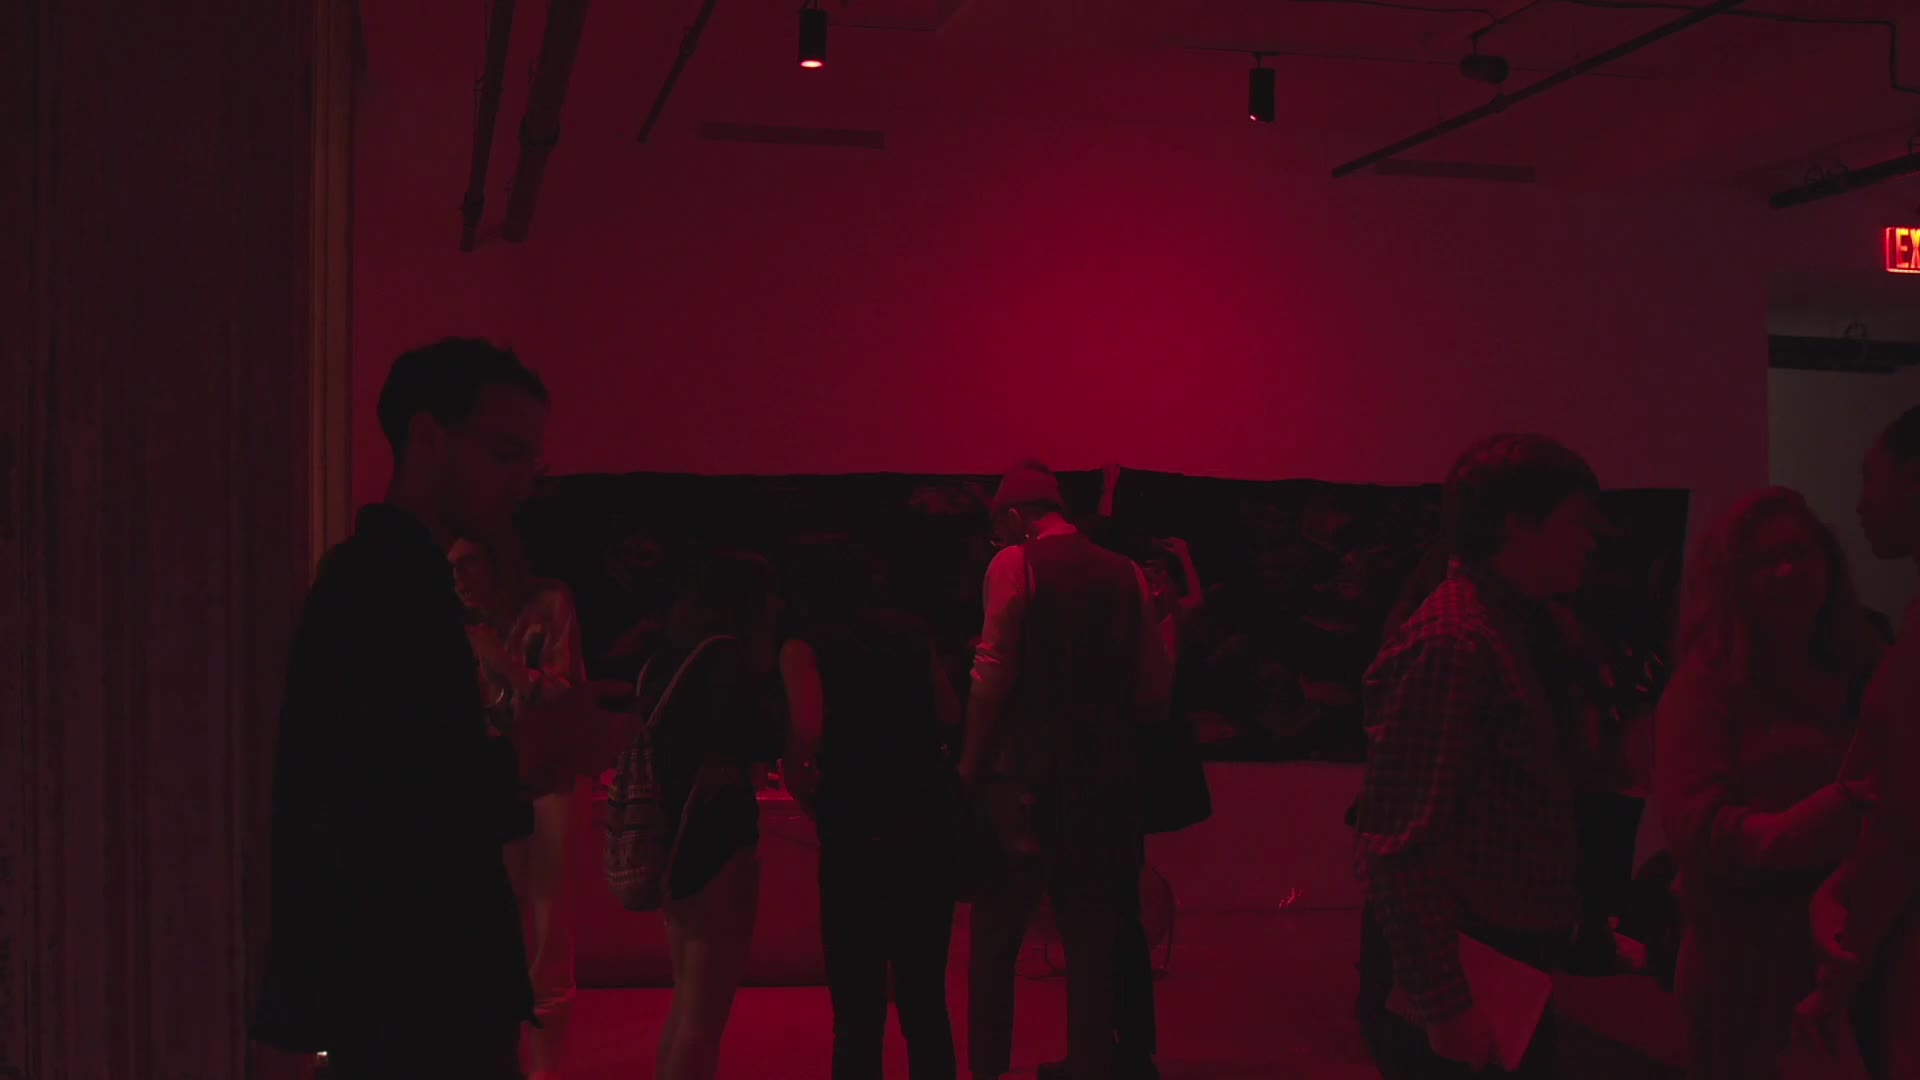 A person plays music and wanders around the room. Scenes of food, video projections with people dancing and crowds mingling are intercut throughout.